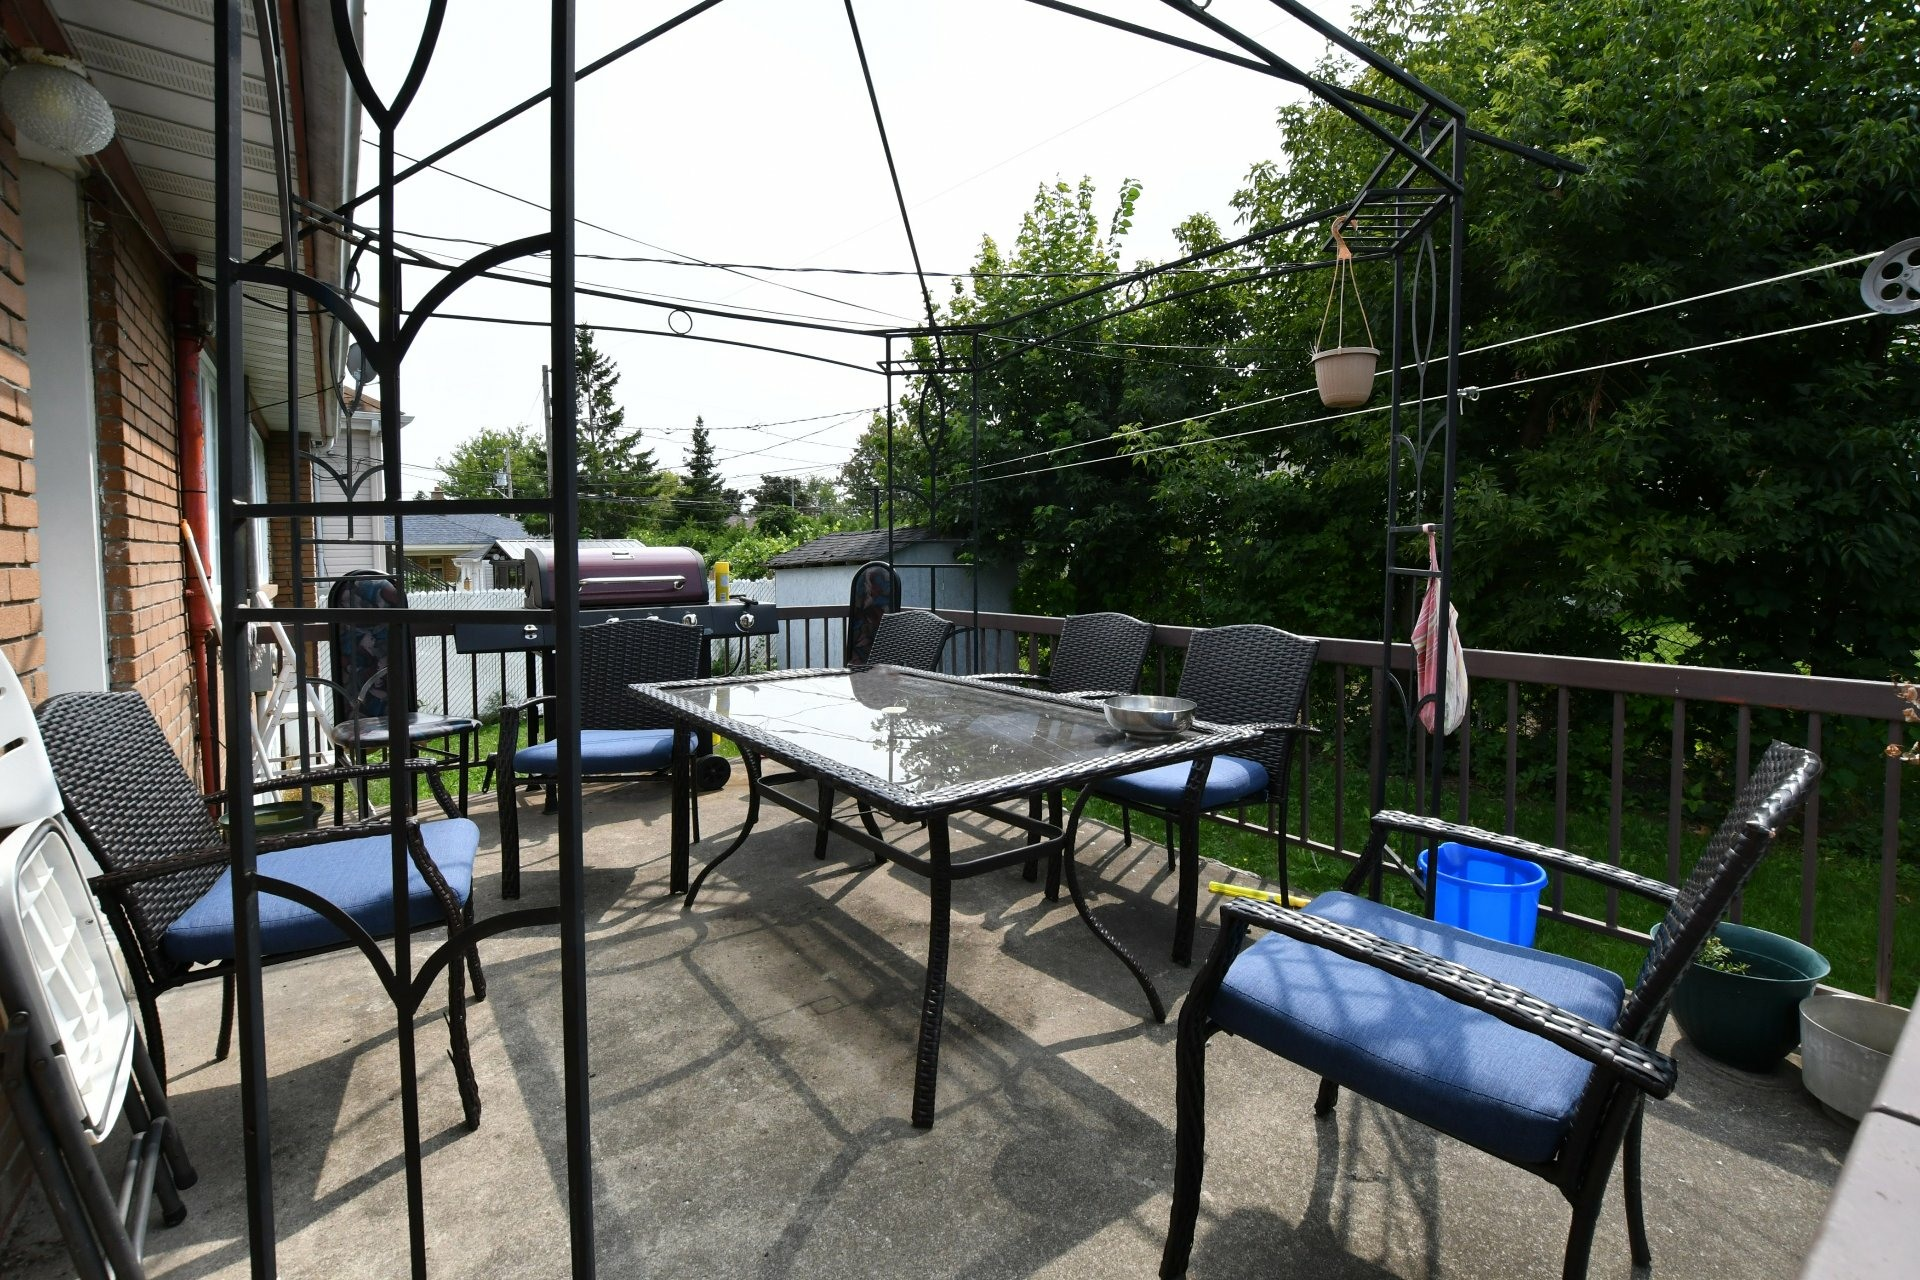 image 19 - House For sale Laval Chomedey  - 7 rooms